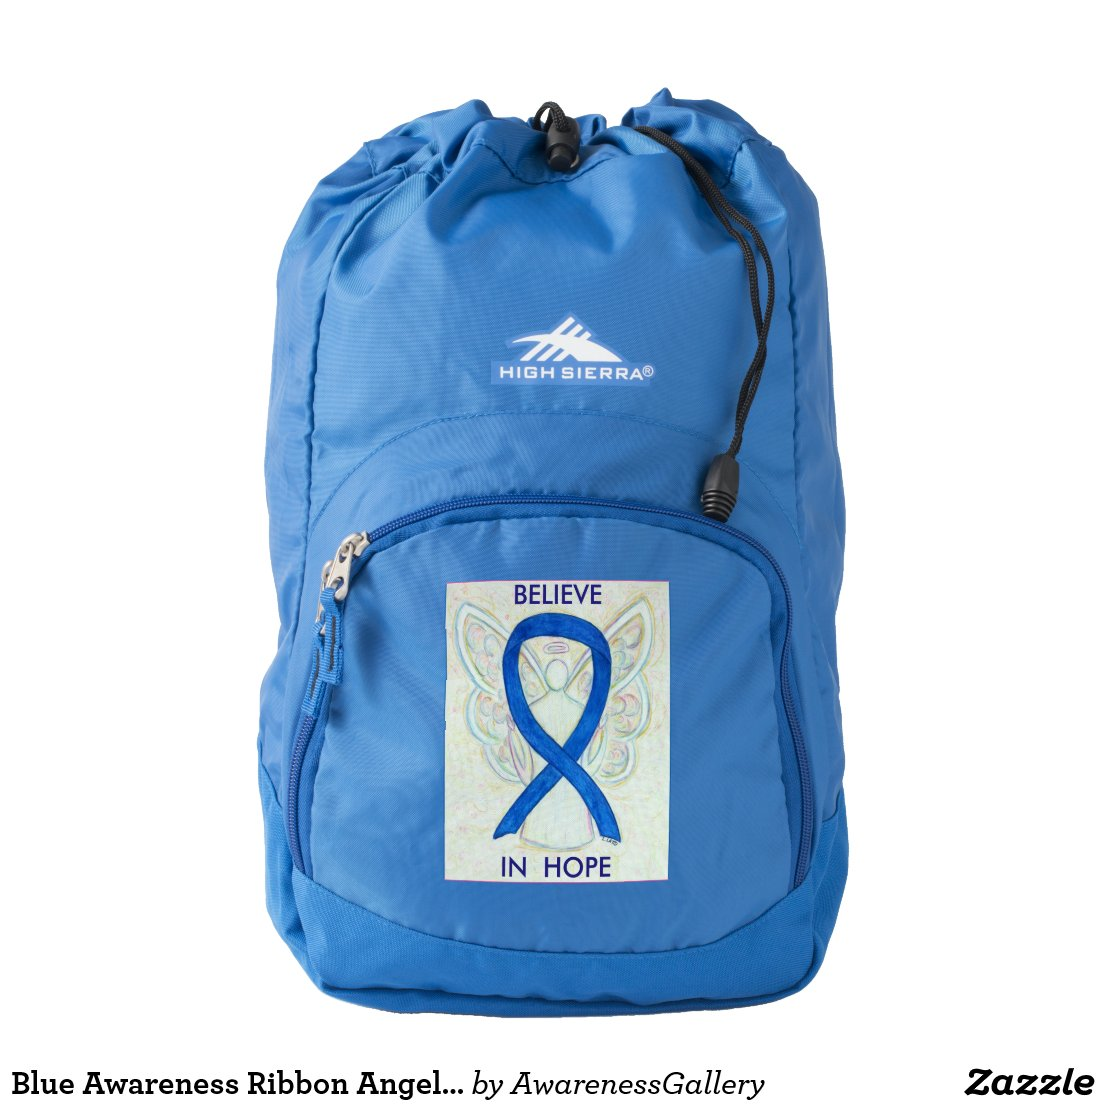 Blue Awareness Ribbon Angel Personalized Backpack